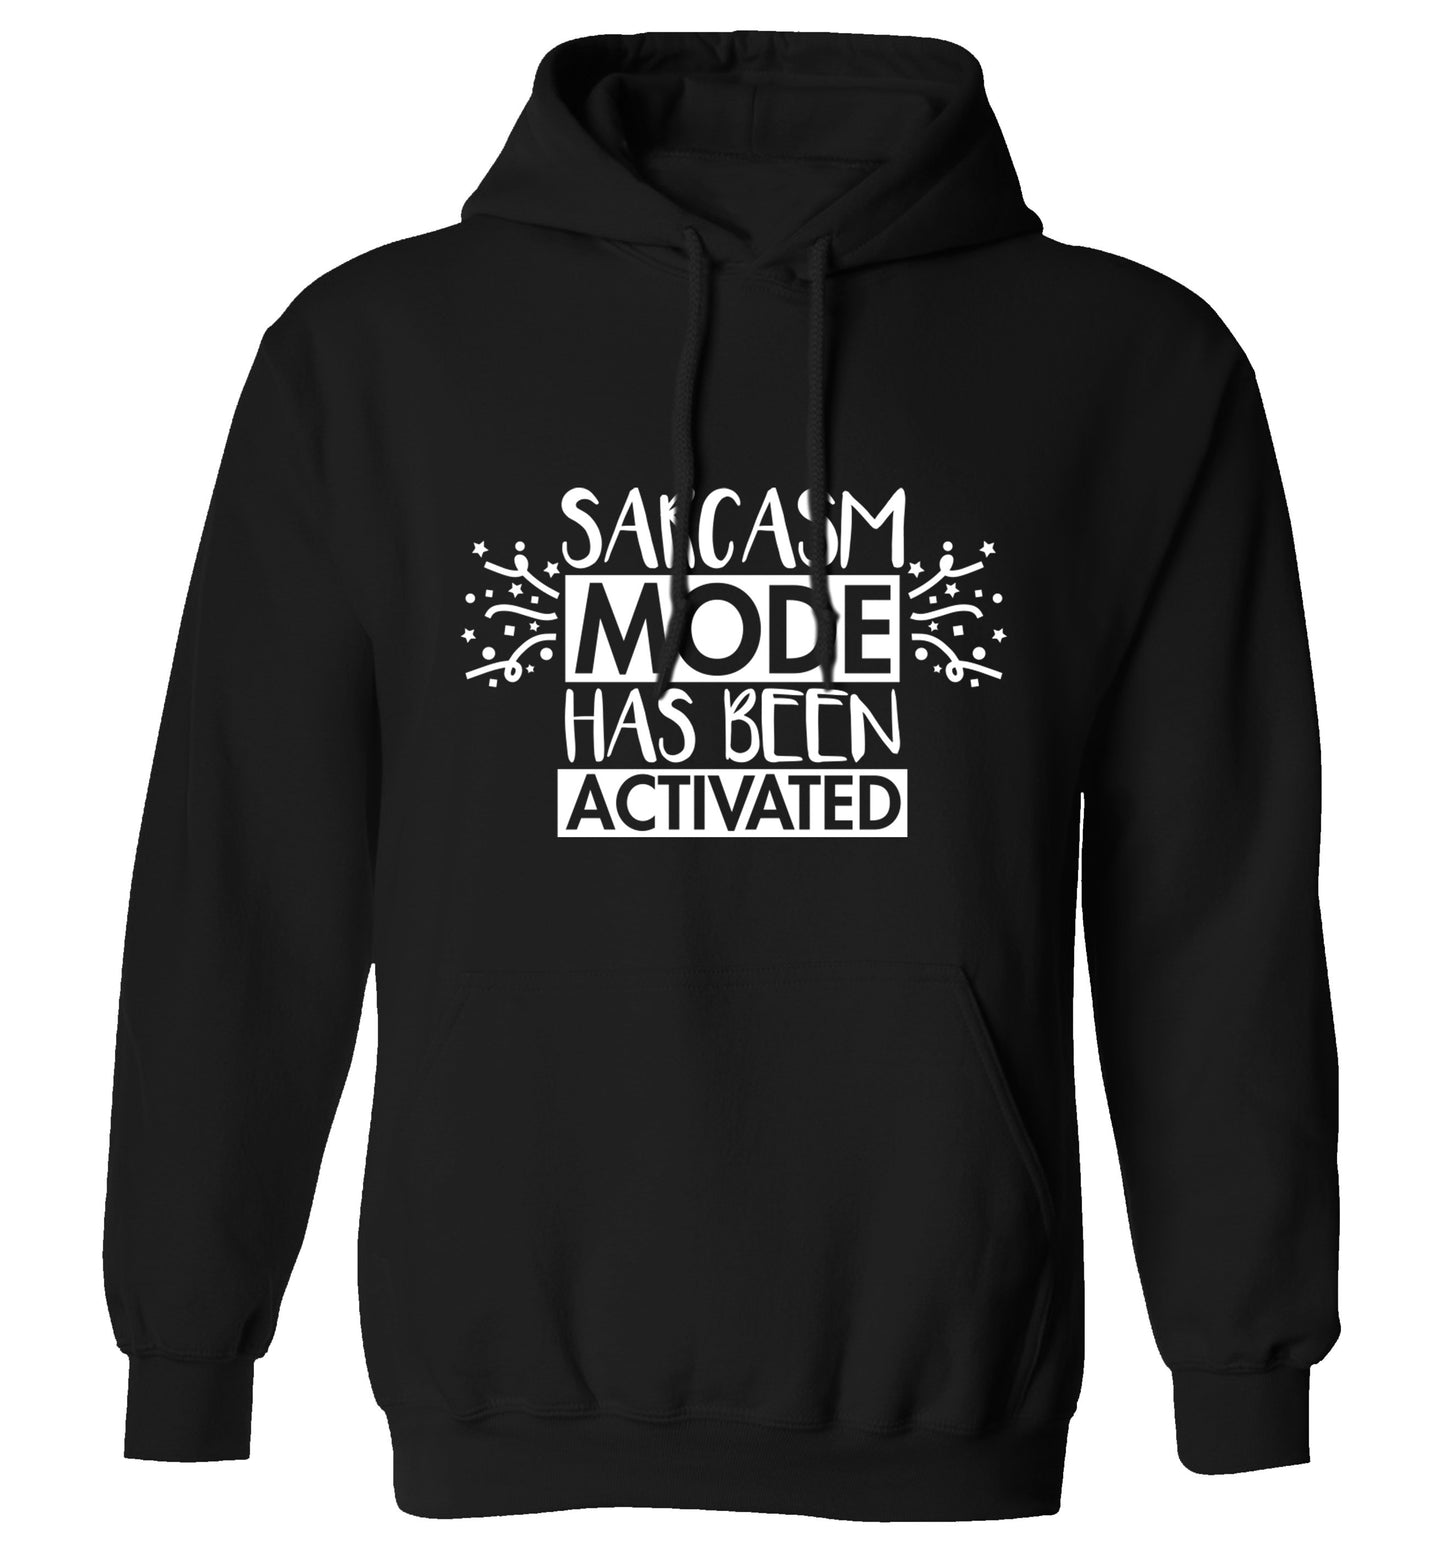 Sarcarsm mode has been activated adults unisex black hoodie 2XL